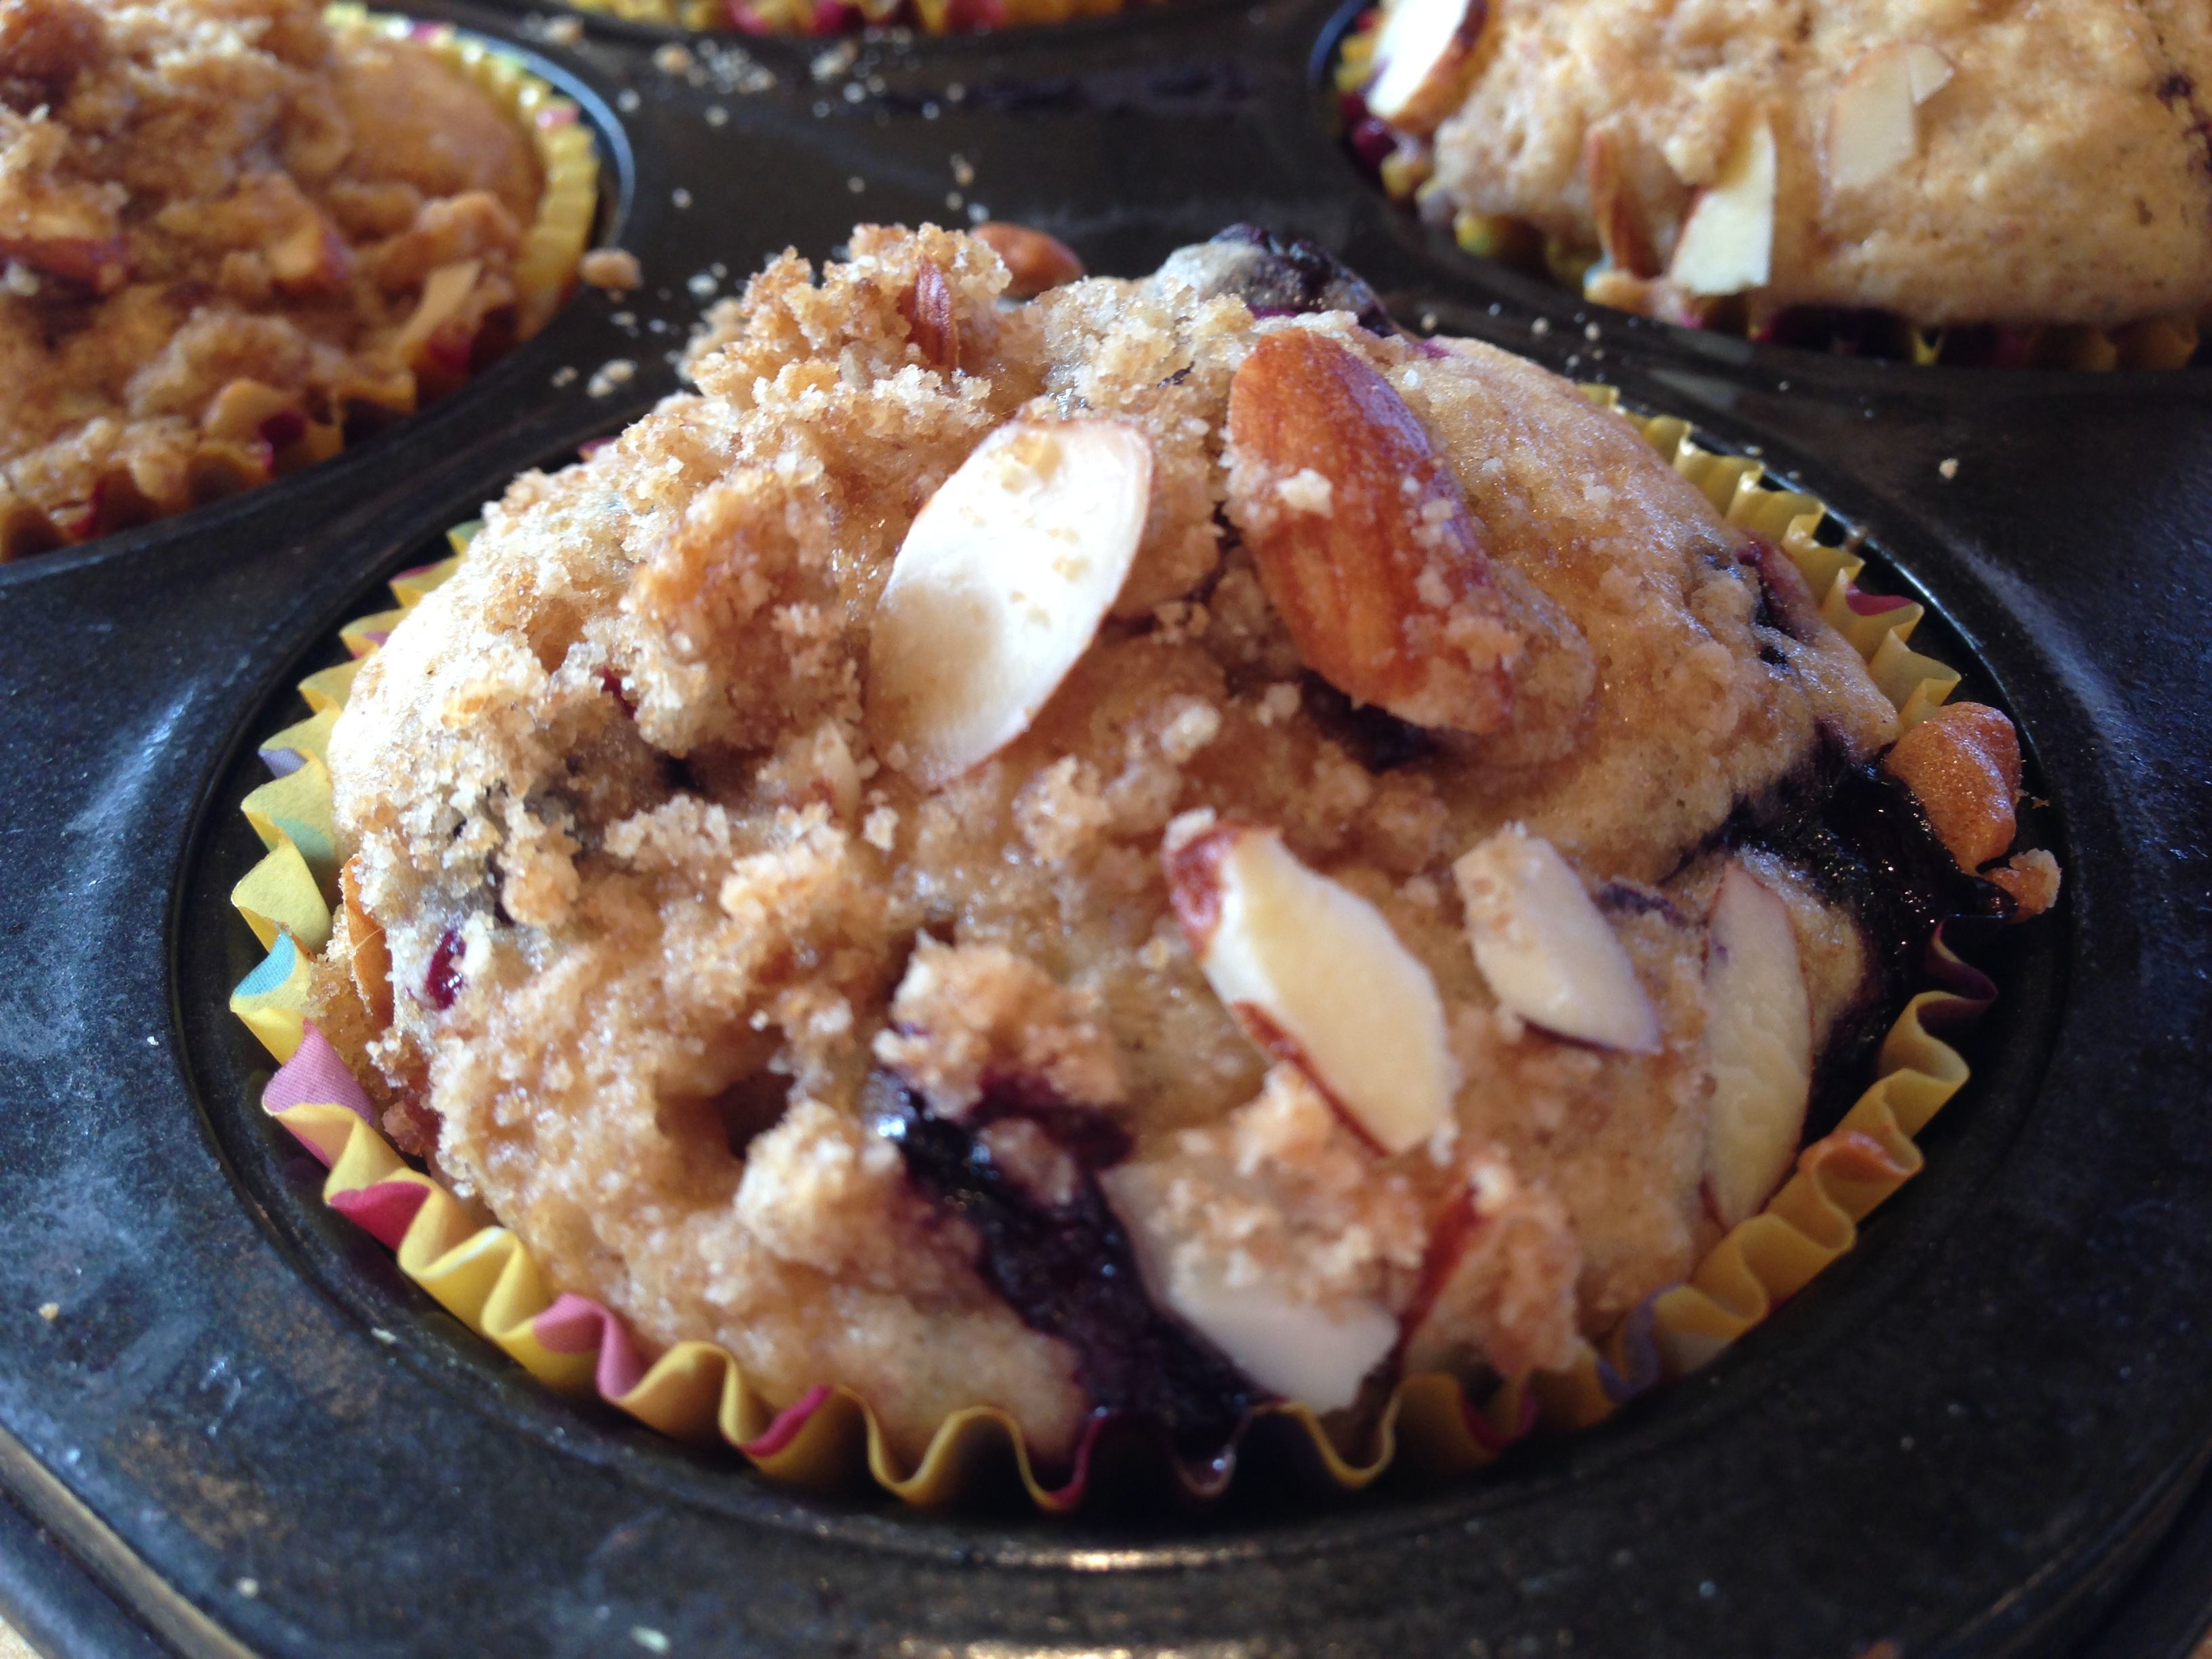 Blueberry Almond Muffins with Streusel Topping | The Brown ...